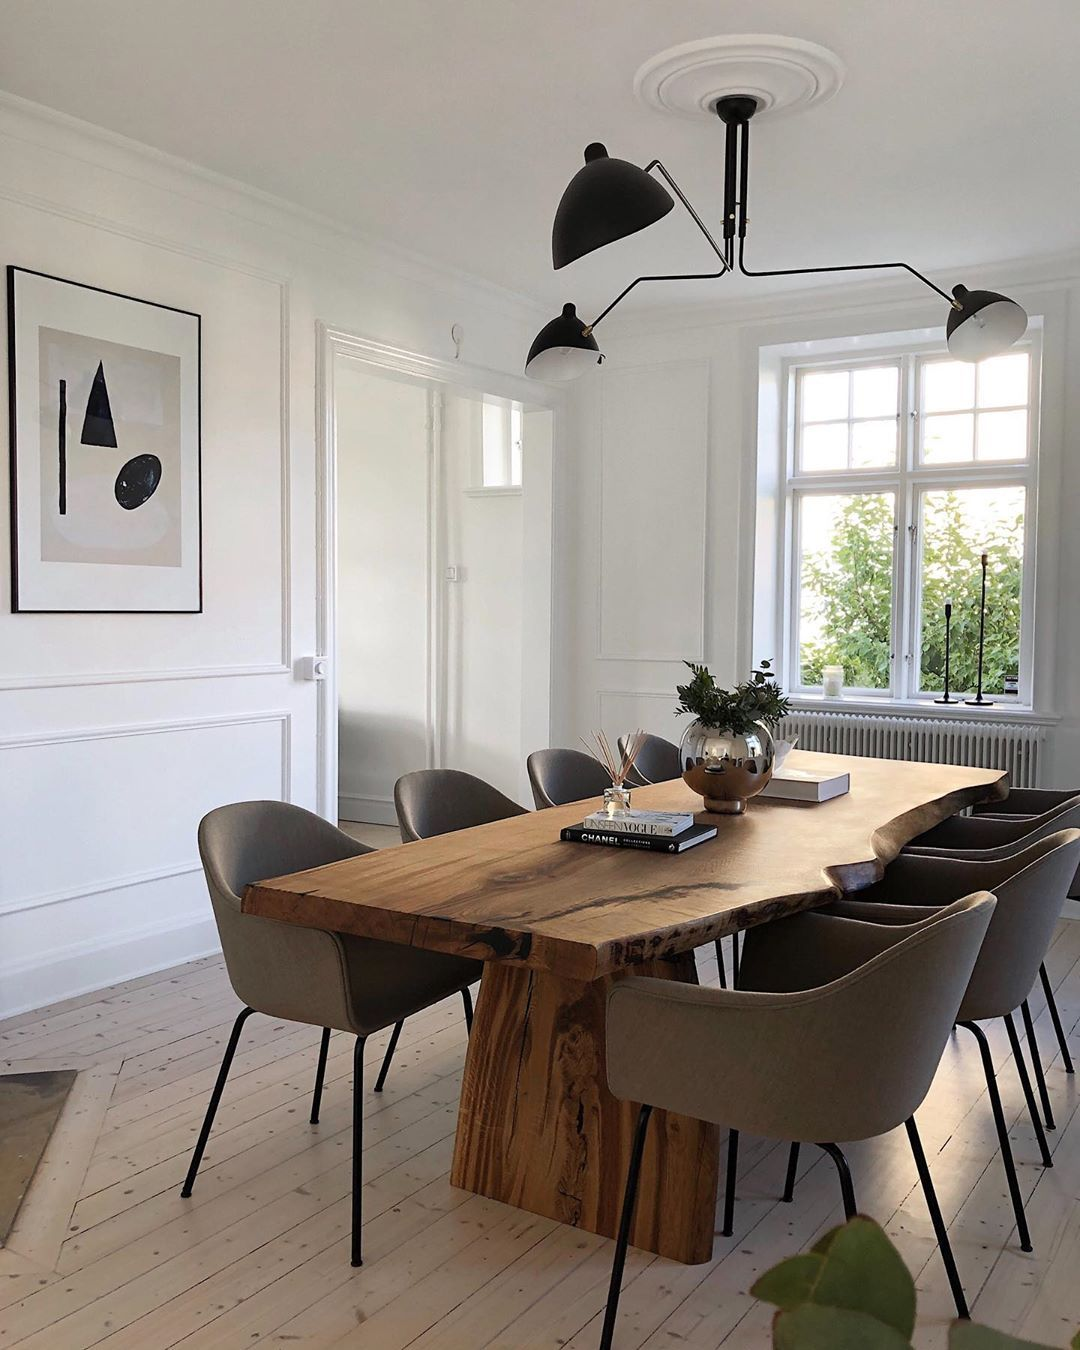 Kristin Rödin On Instagram Sponsored Our Dream Wood Table Has Arrived Made By The Talented Backstromwoodw Dining Room Design Home Living Dining Room